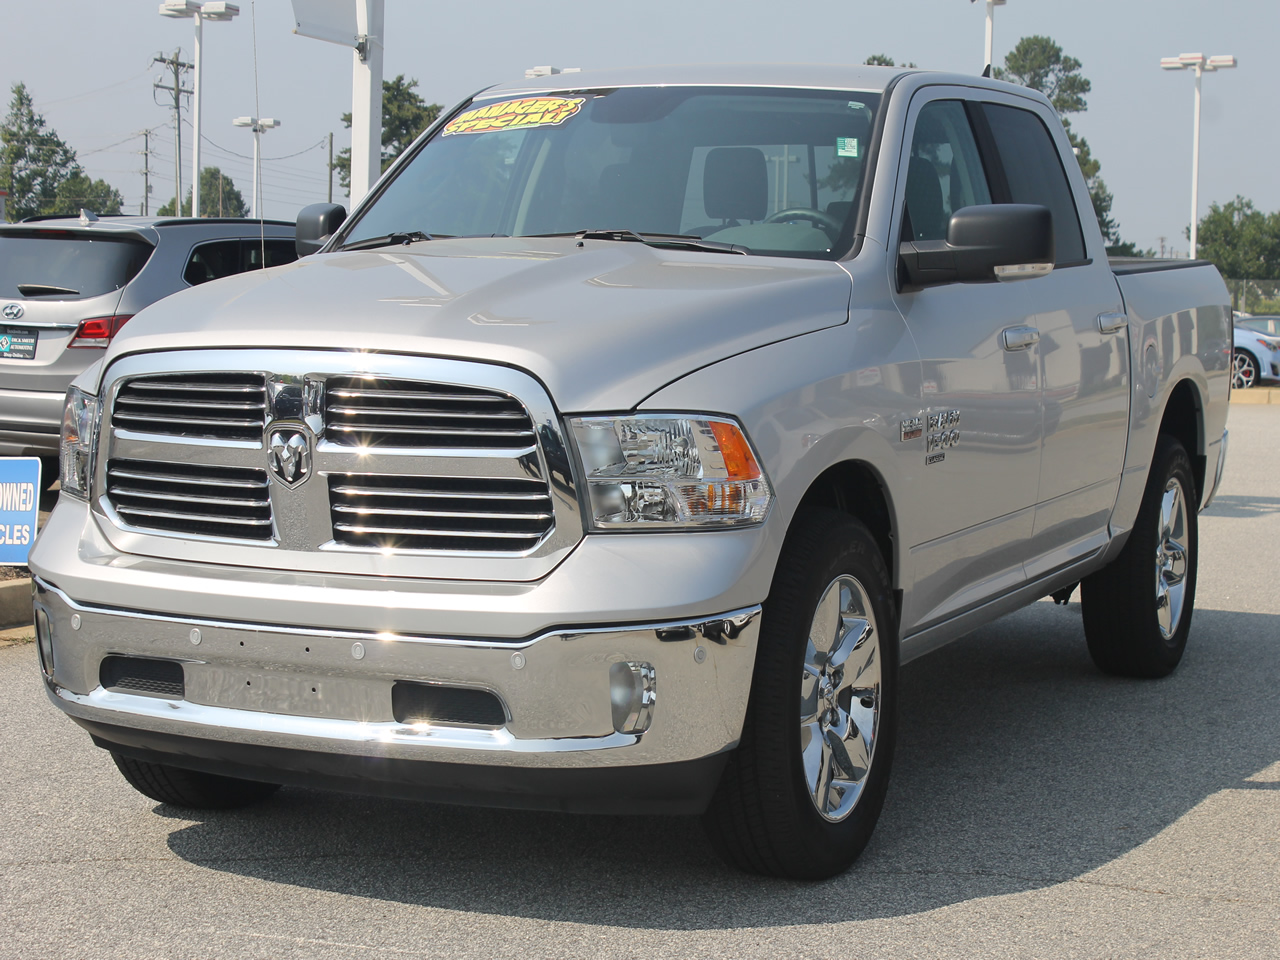 2019 DODGE RAM 1500 Crew Cab BIG HORN 4WD